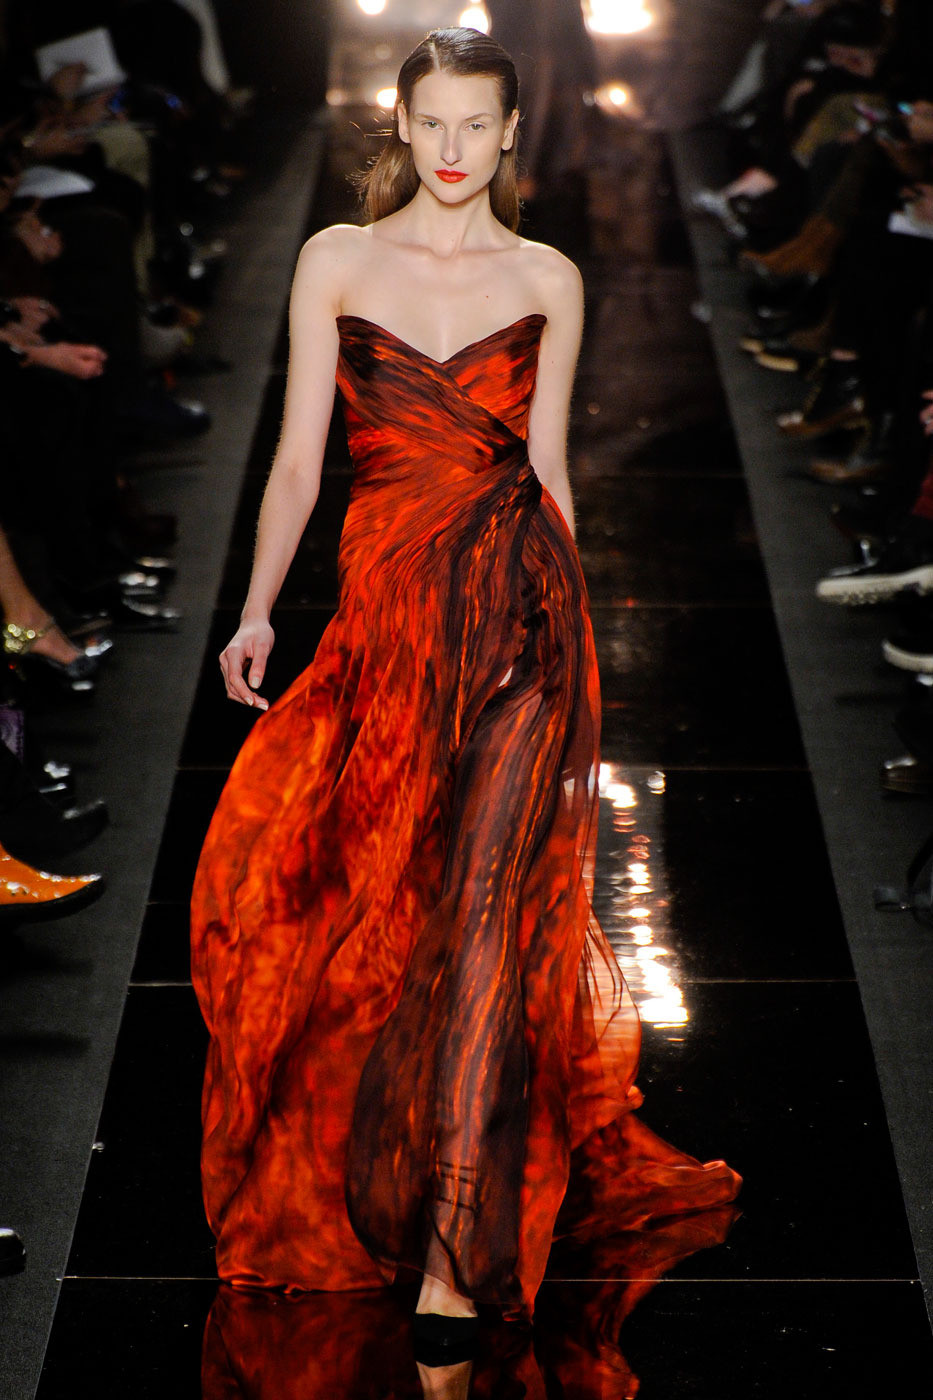 Monique Lhuilliers Fiery Gown  The 20 Hottest Looks From New York Fashion Week Fall 2012